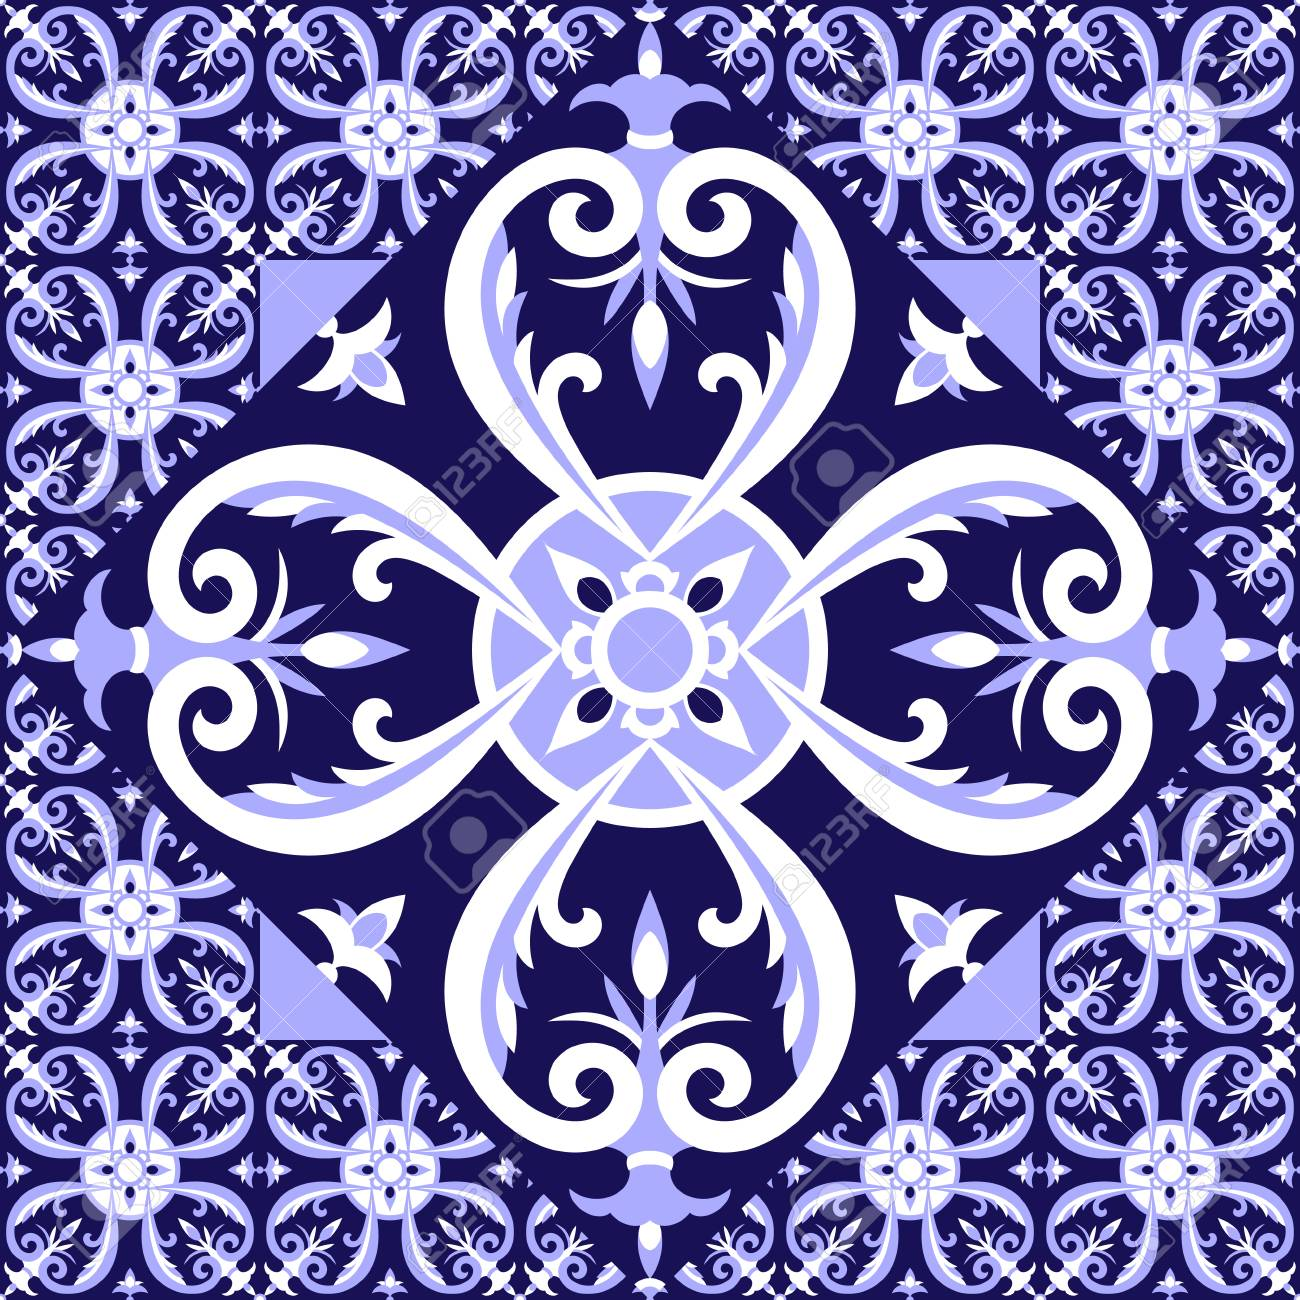 Spanish white blue tiles floor pattern vector with ceramic tiles spanish white blue tiles floor pattern vector with ceramic tiles big tile in center is dailygadgetfo Image collections